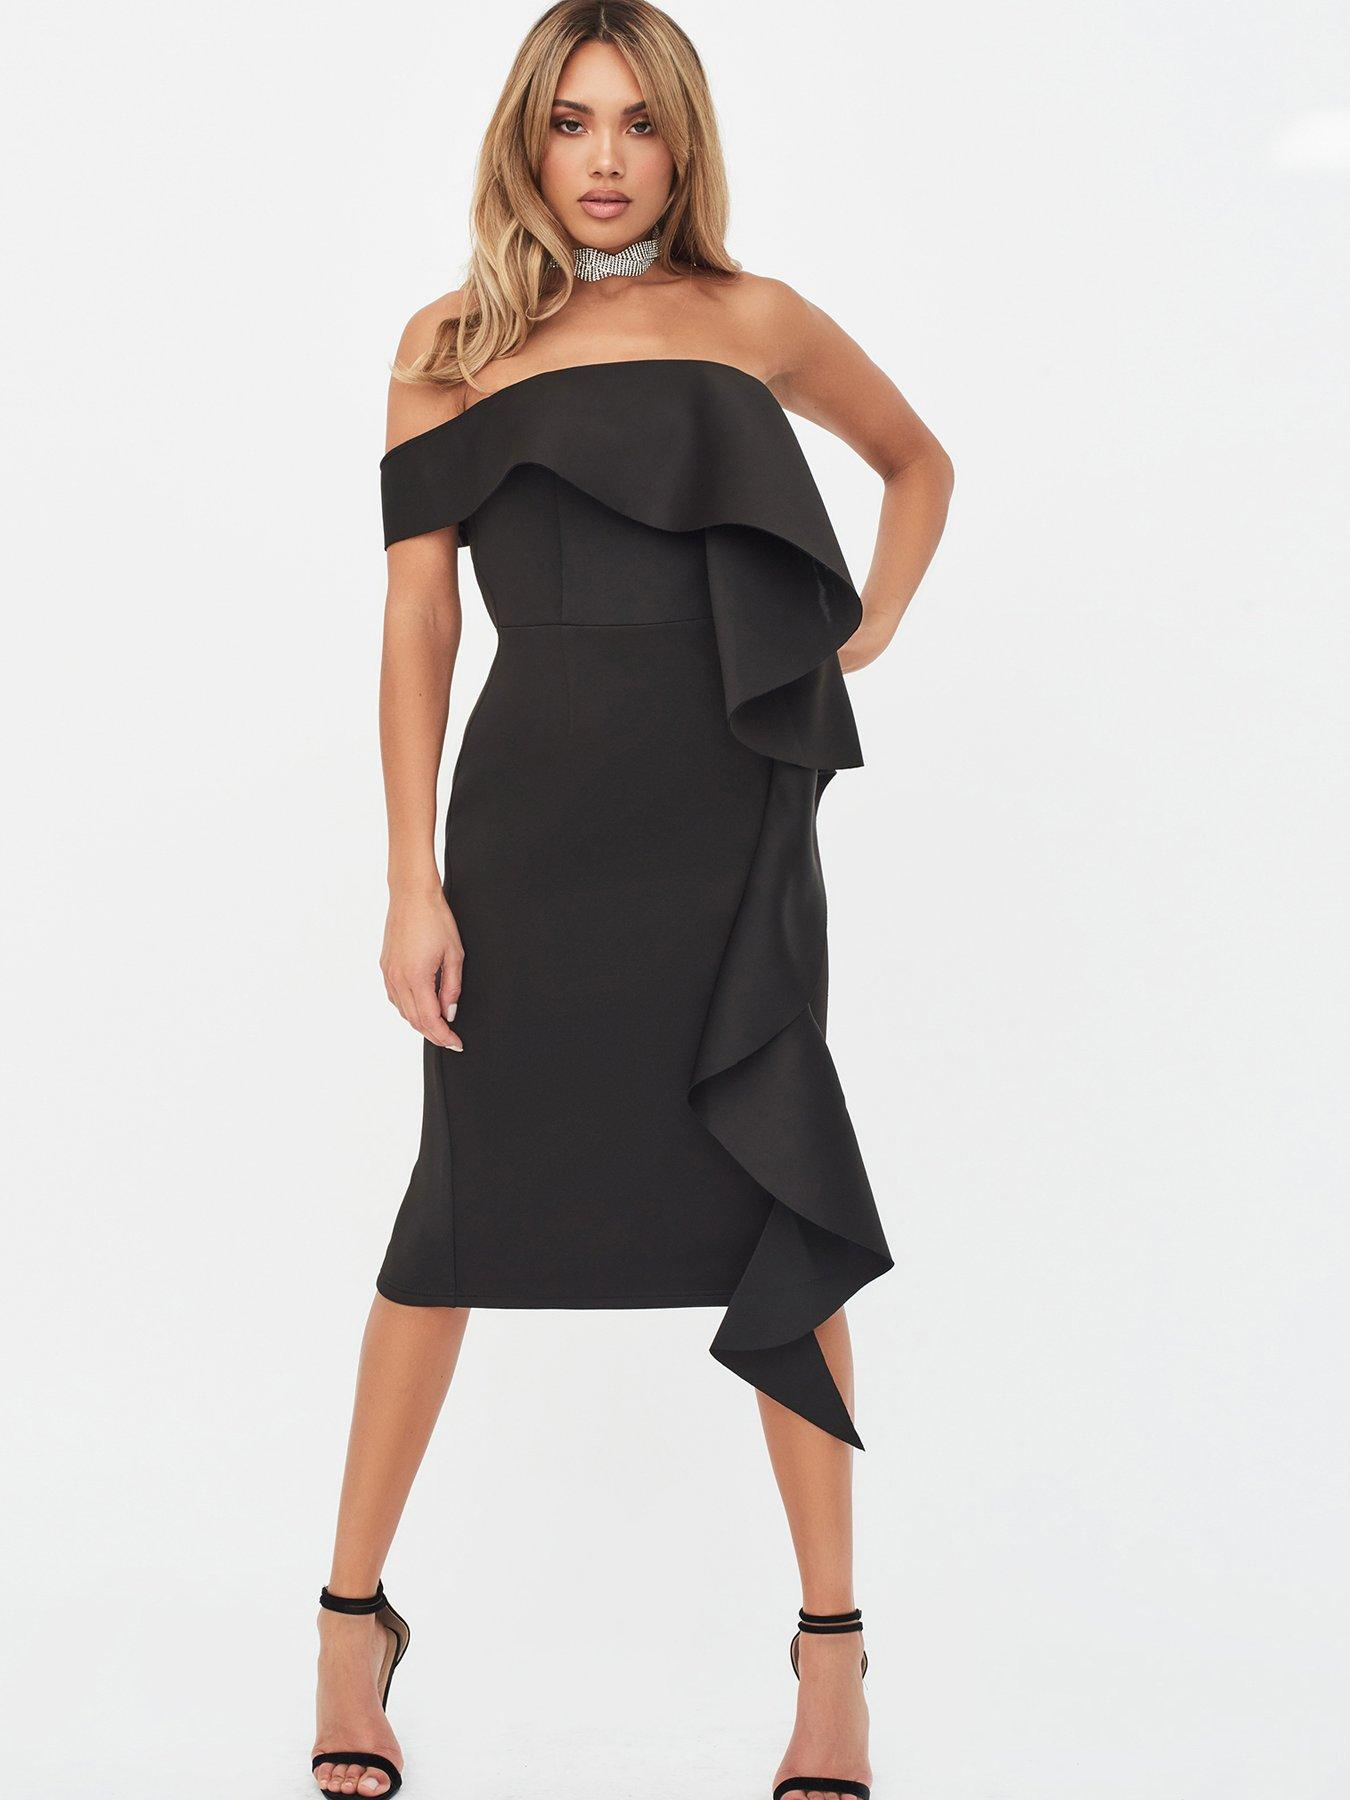 Billies Dress Boutique Black Strap Dress with Embossed Print